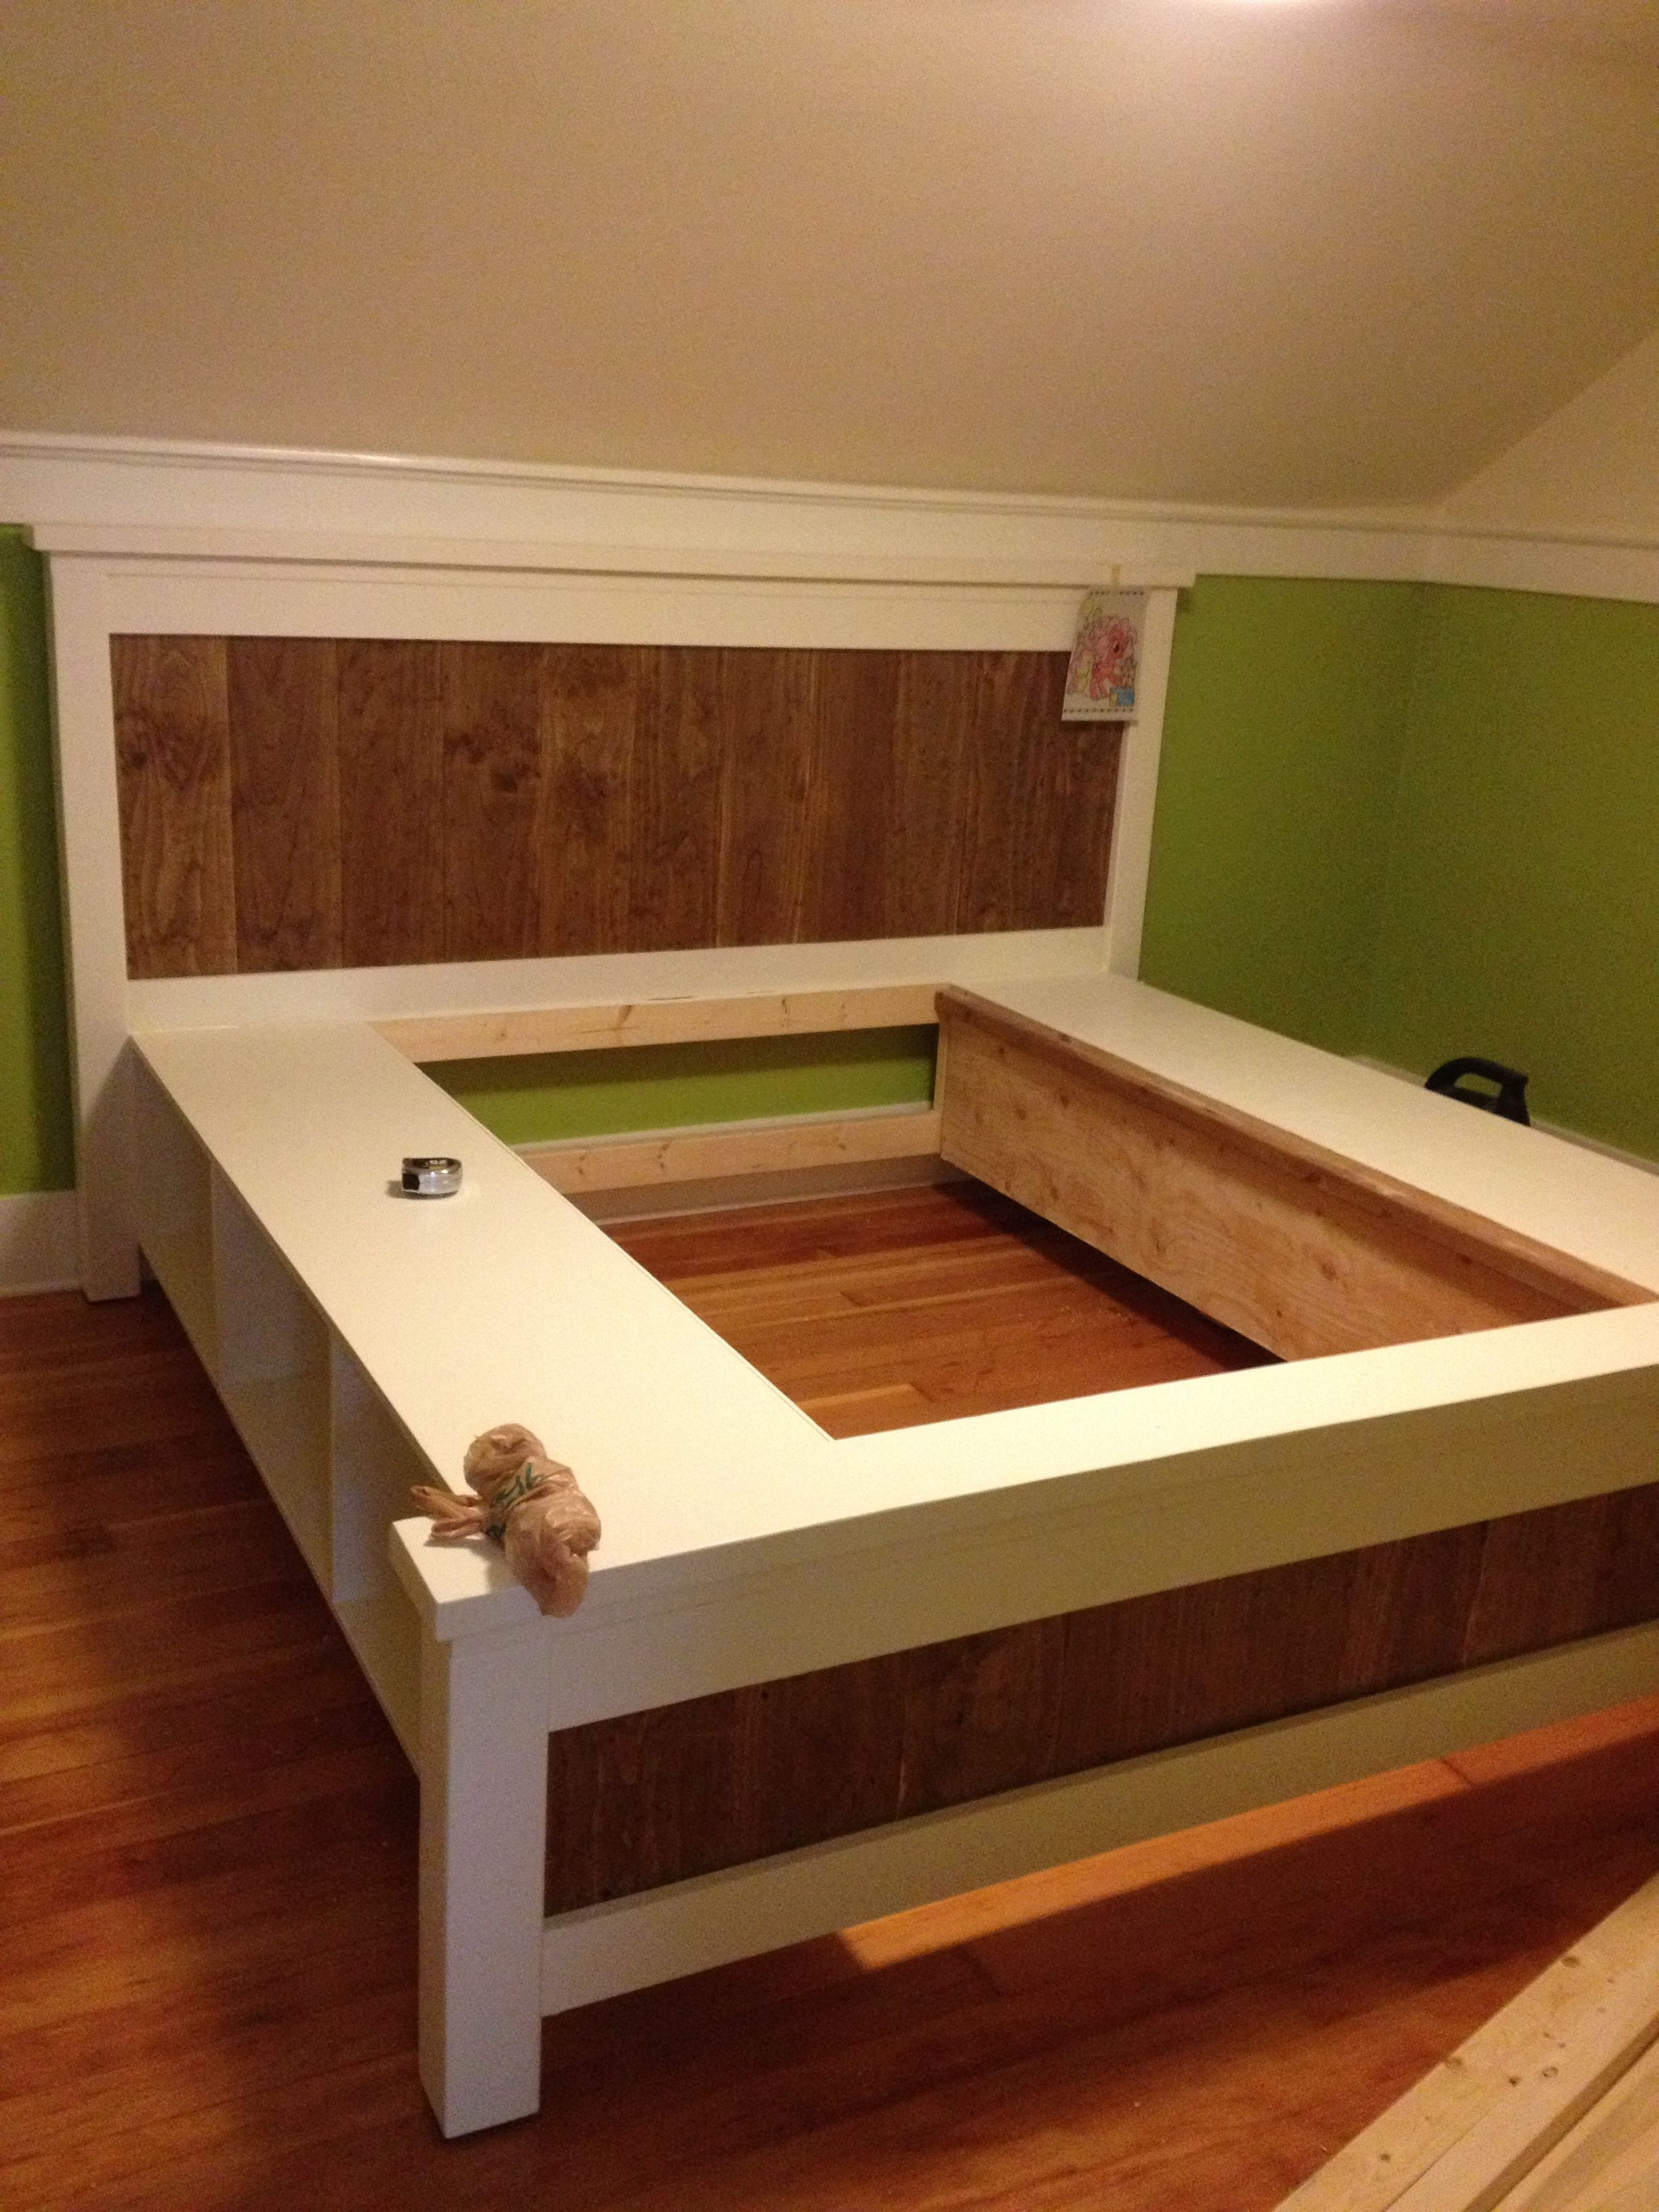 Download Origin… Bed frame with storage, Diy platform